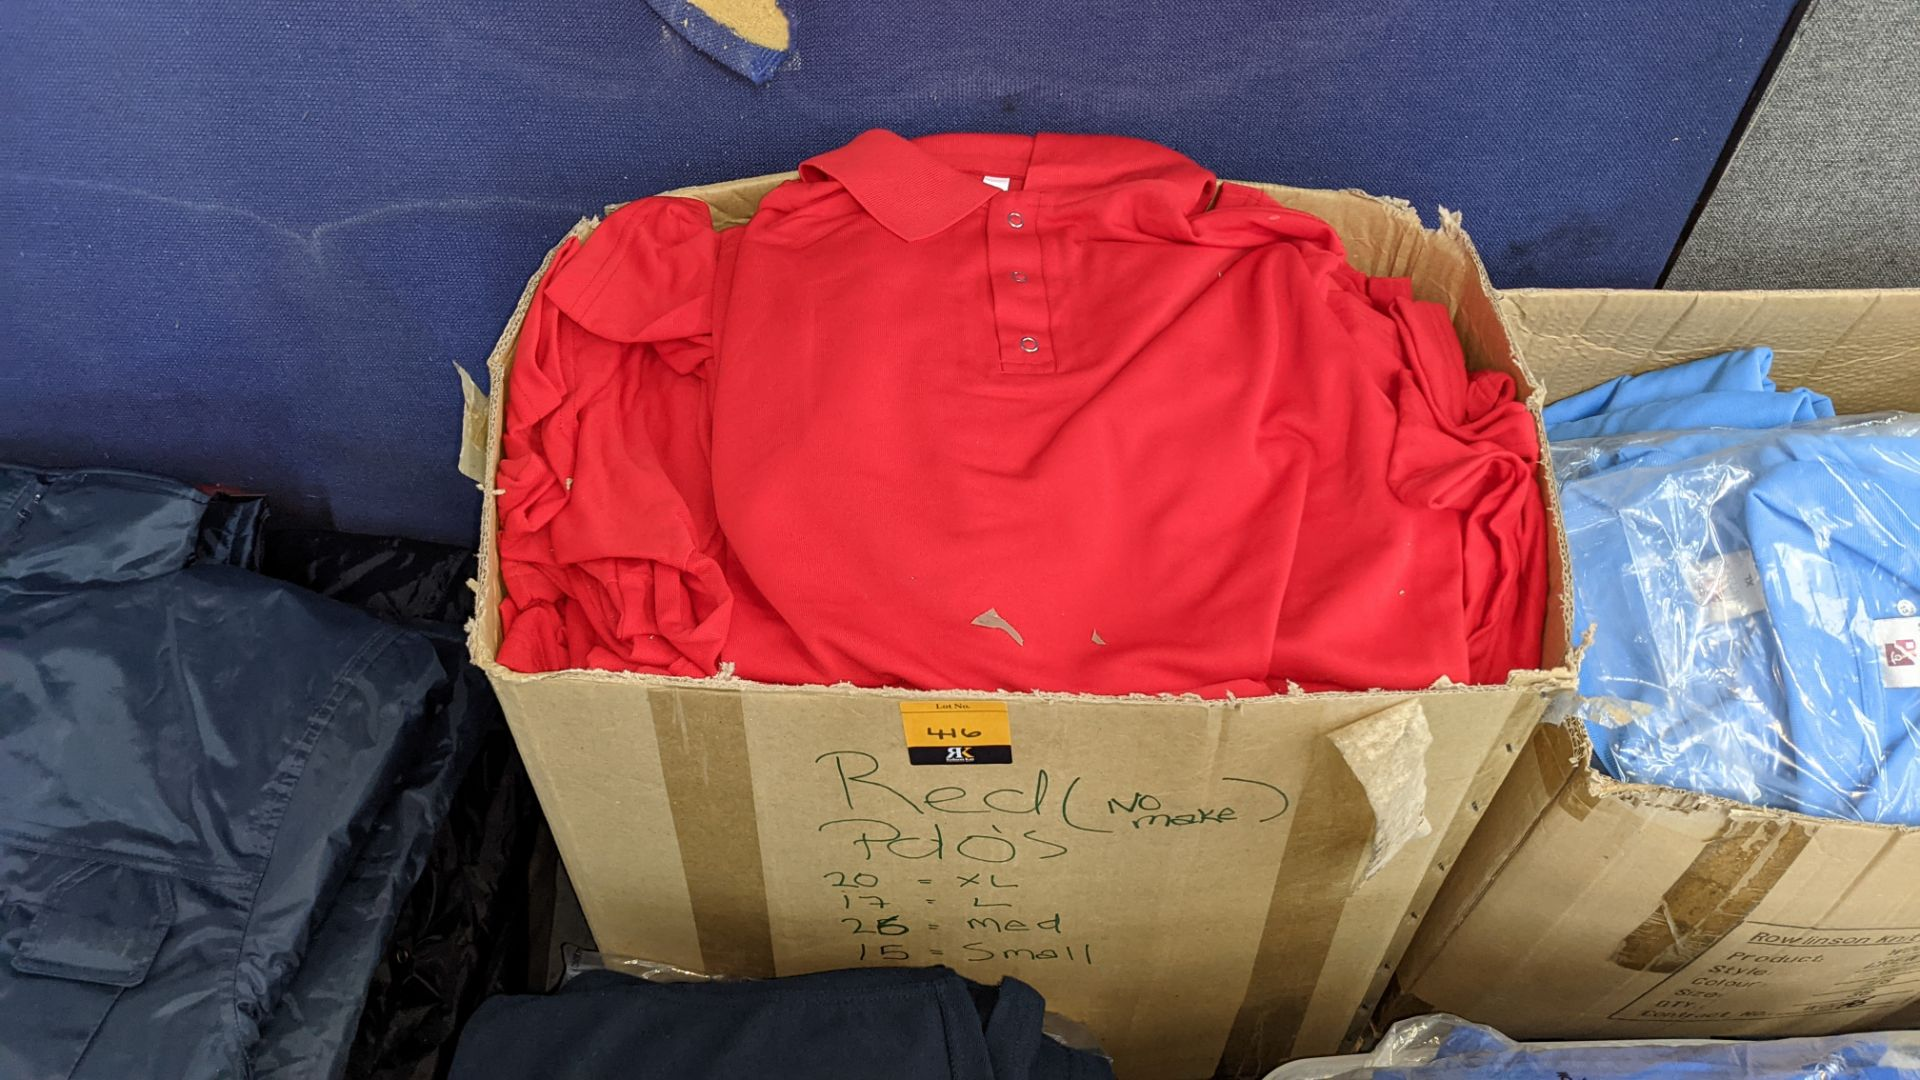 Quantity of red polo shirts